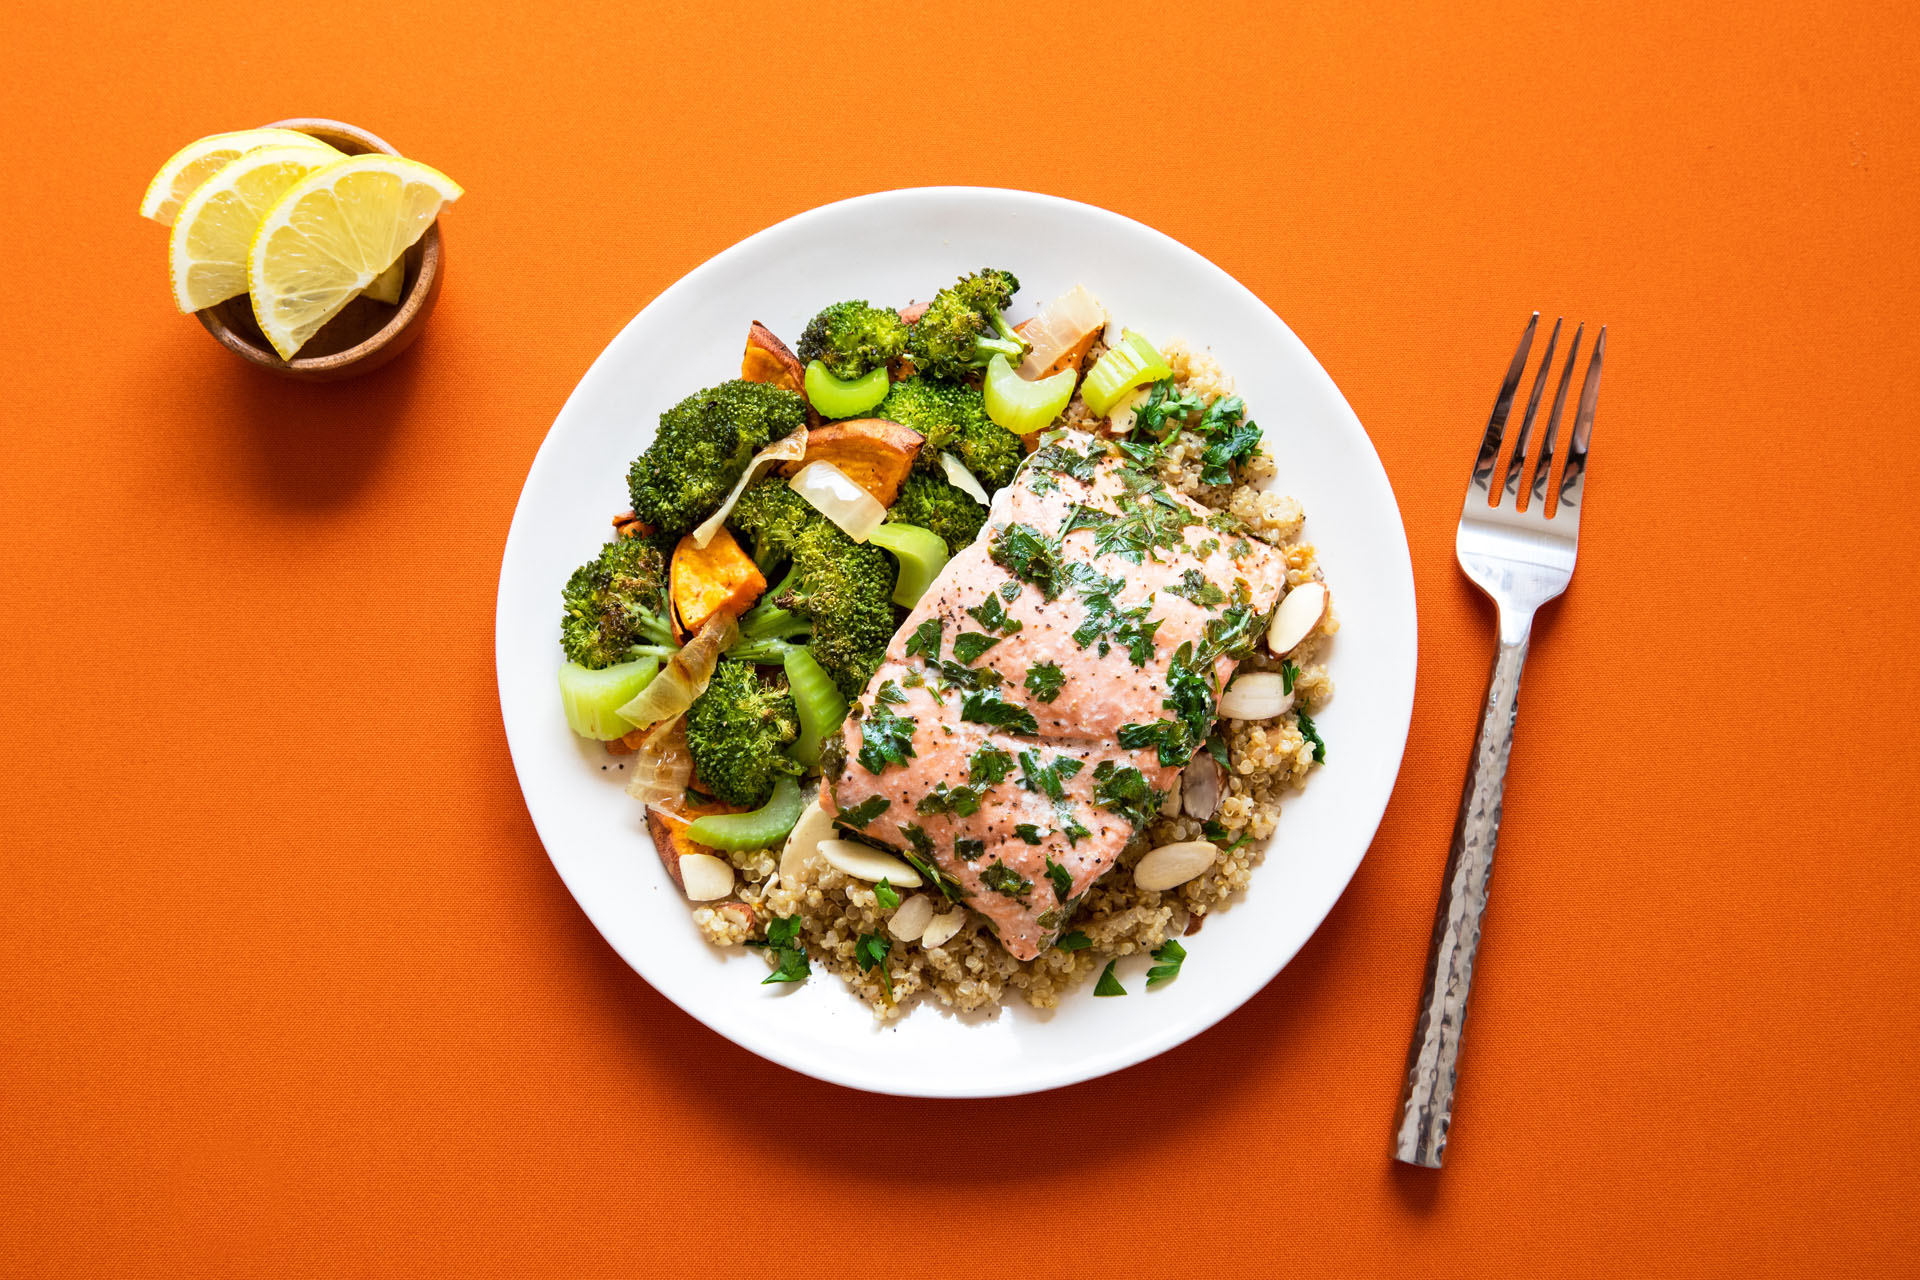 plate of salmon and greens with grains